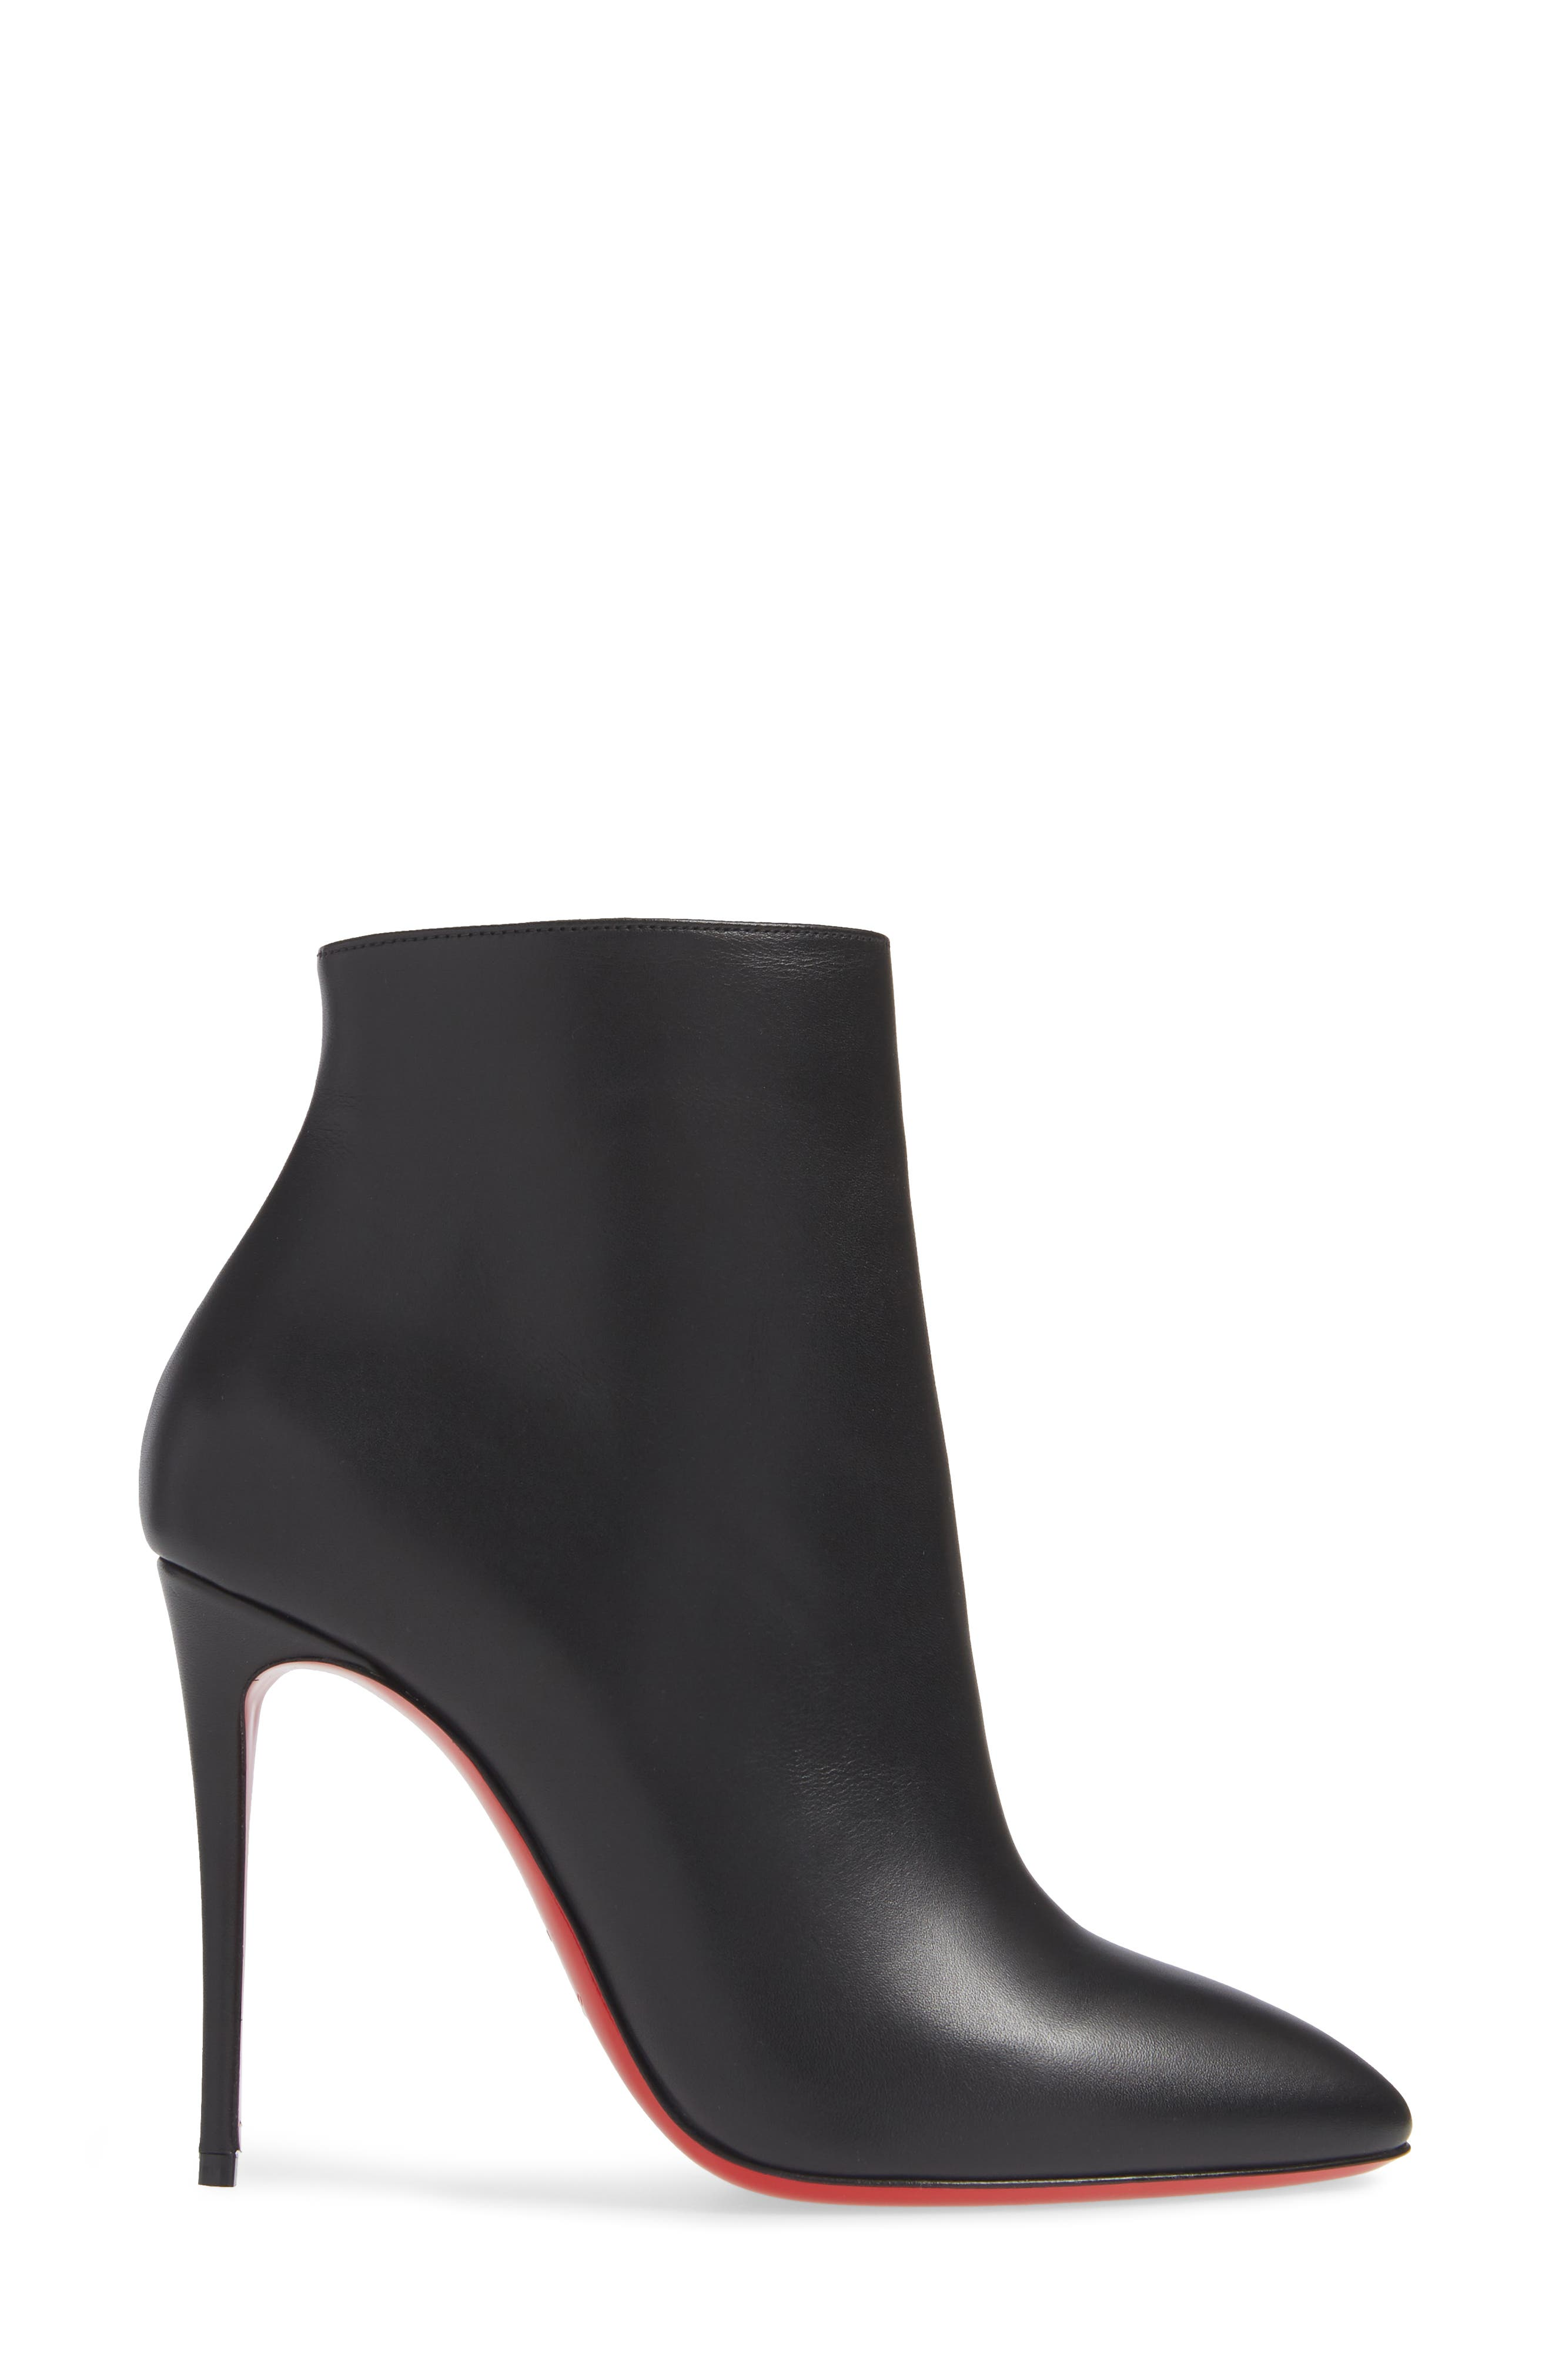 CHRISTIAN LOUBOUTIN, Eloise Pointy Toe Bootie, Alternate thumbnail 3, color, BLACK